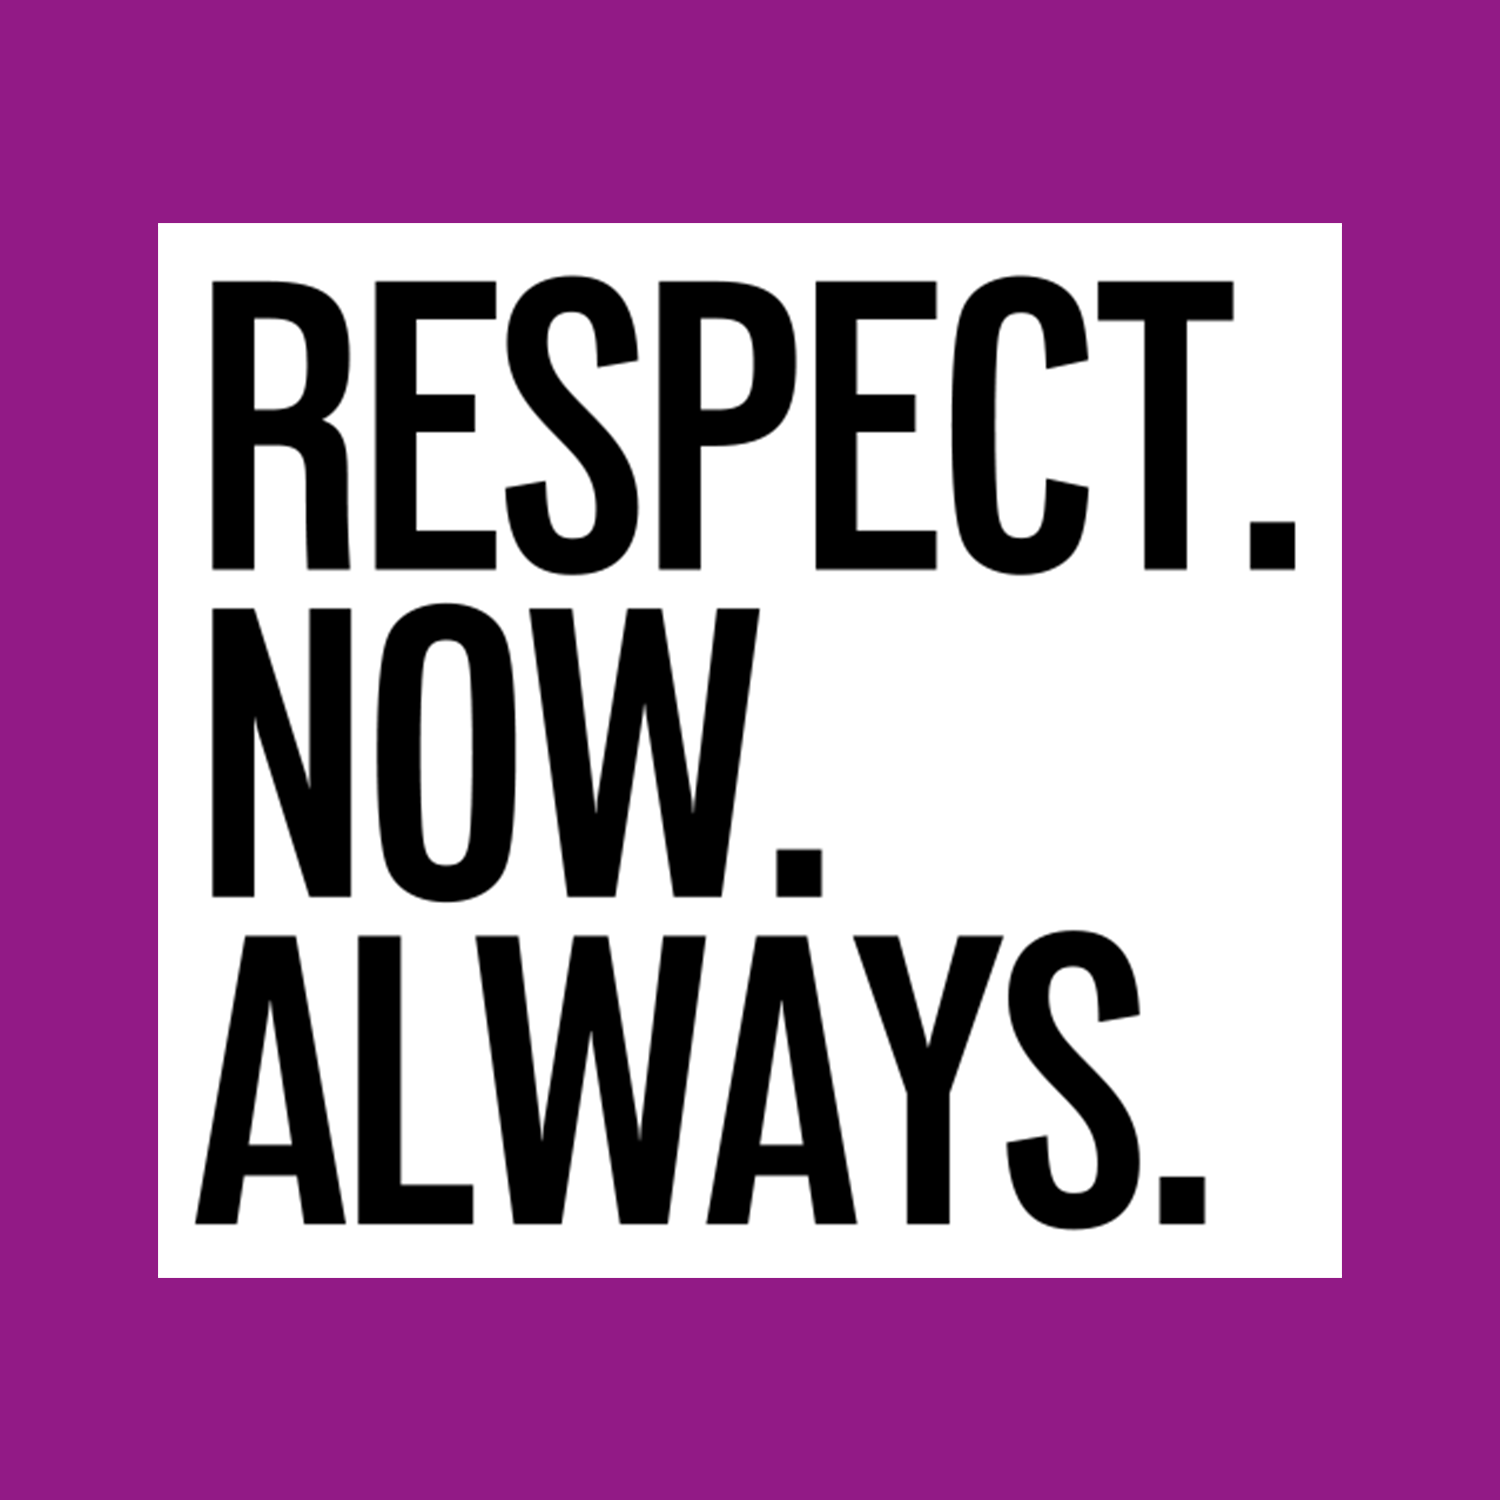 Respect now and always